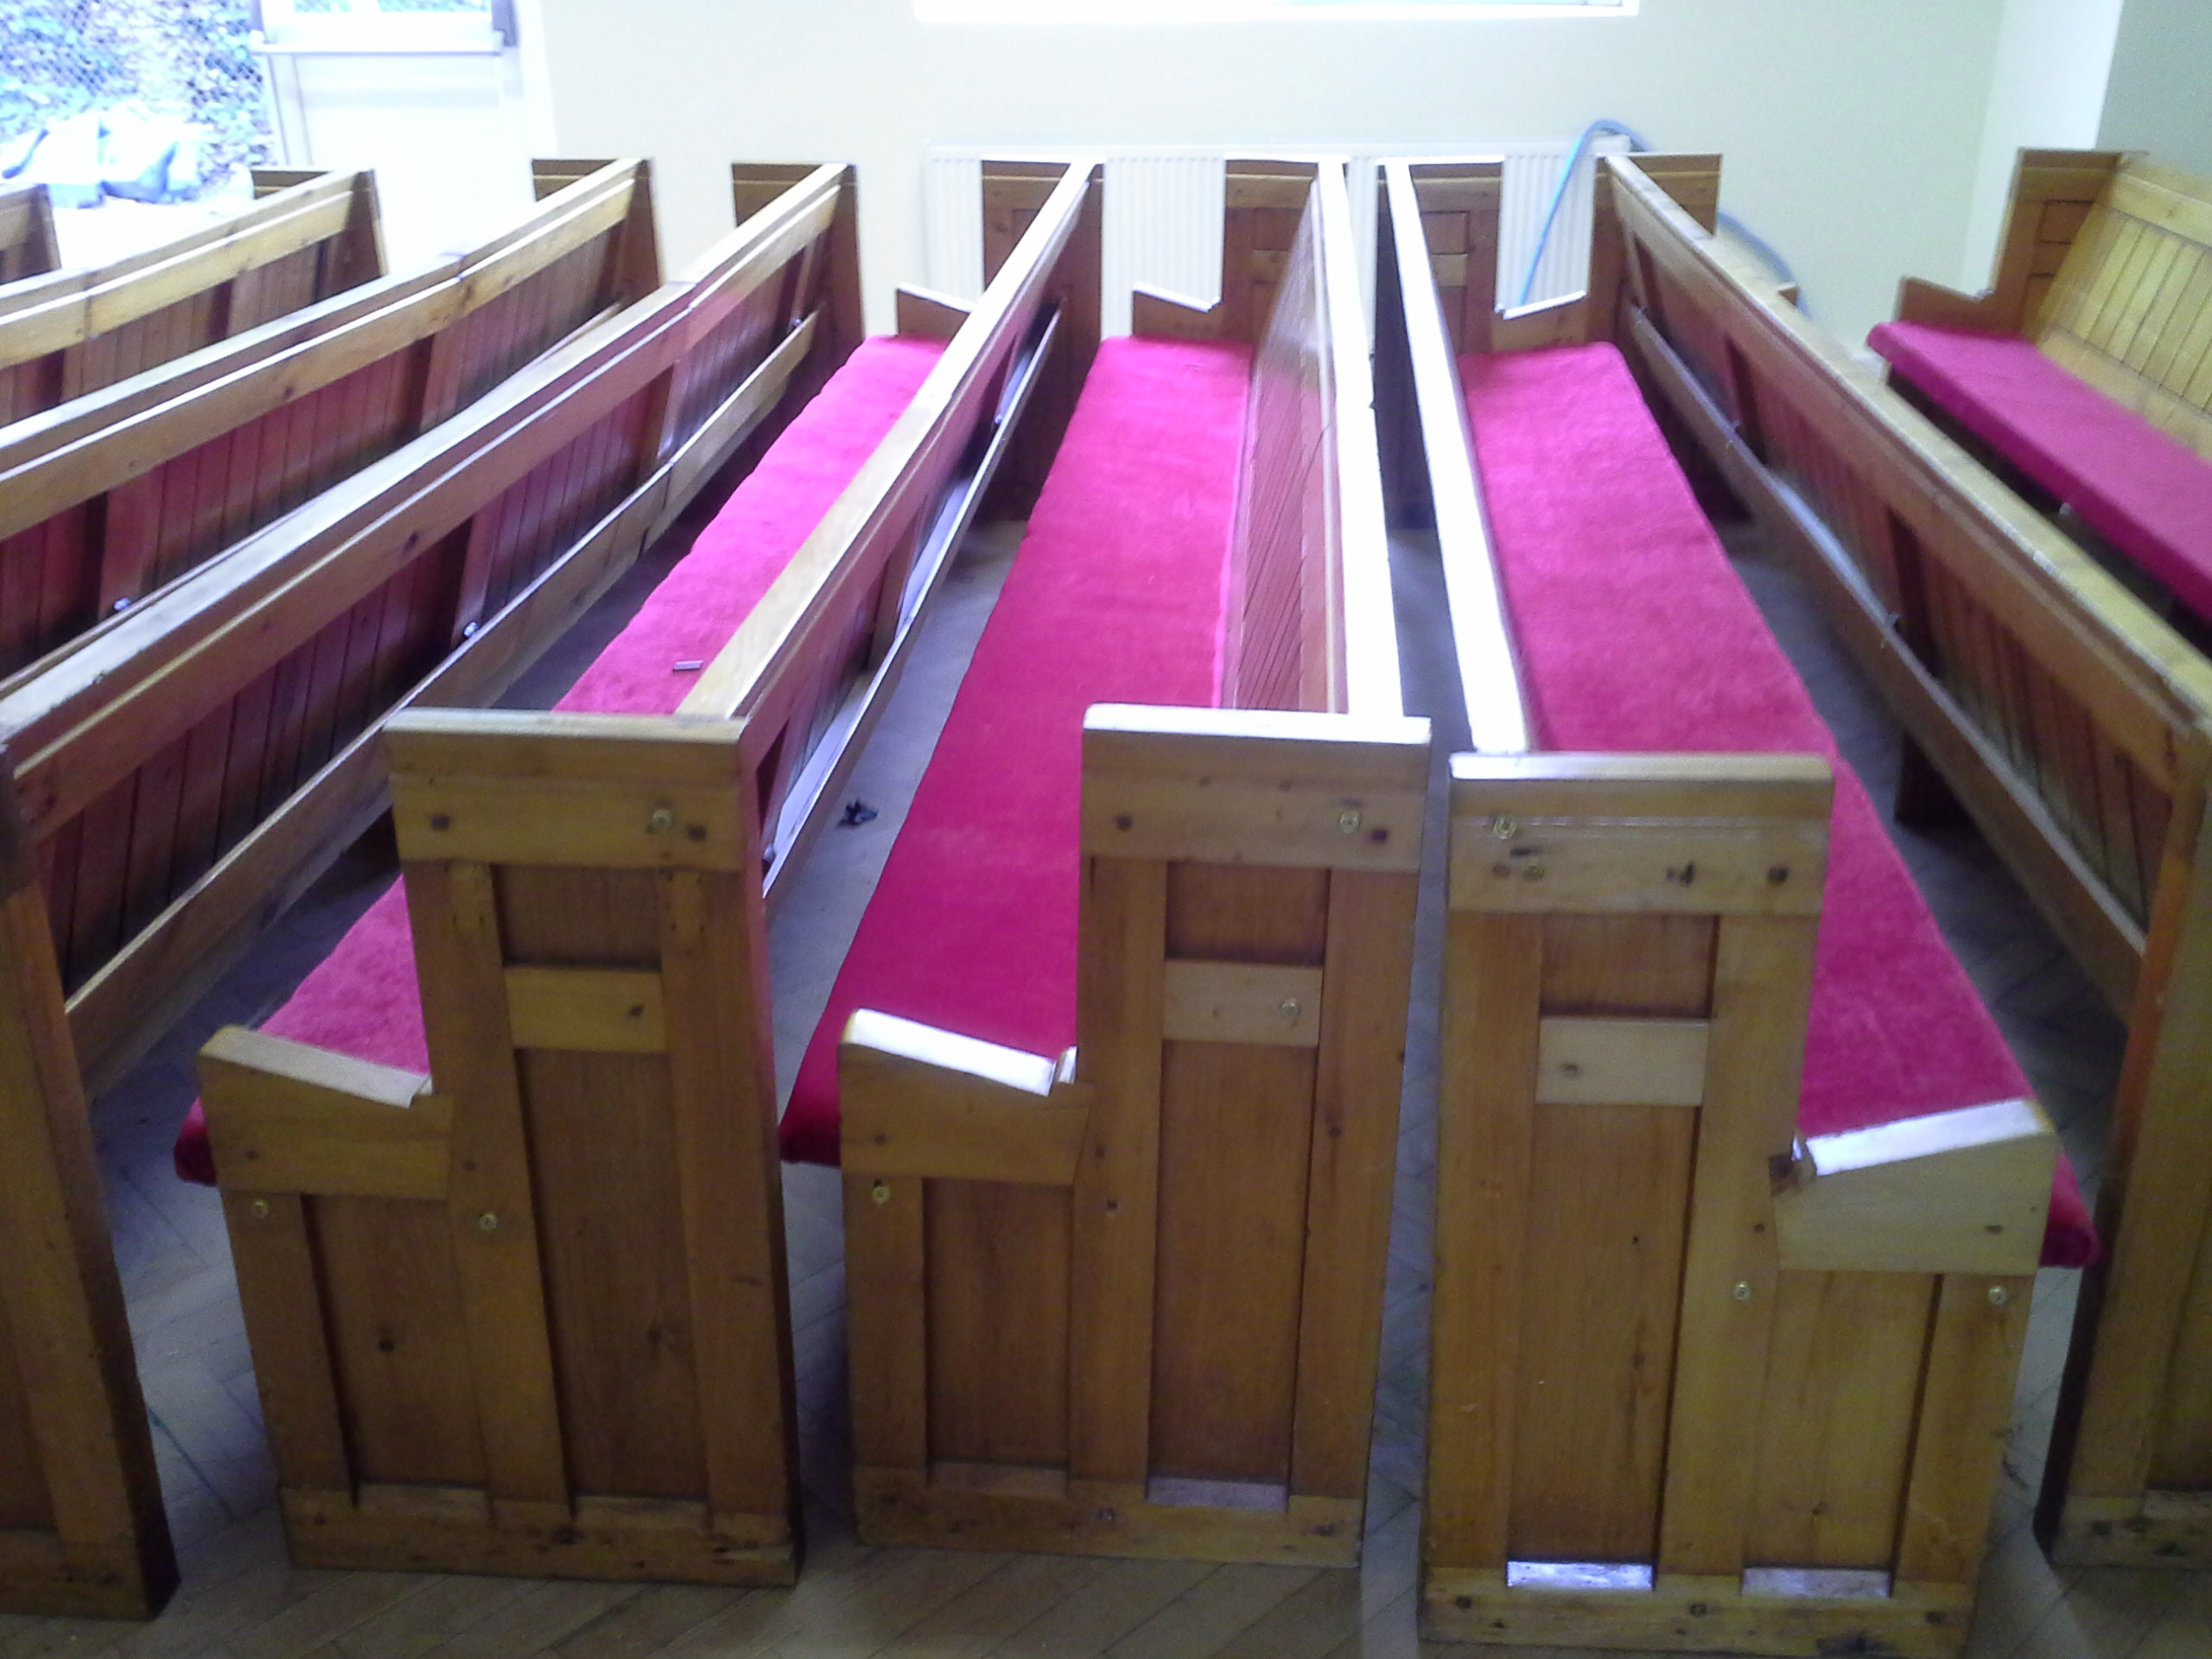 Church seating re-upholstery and wood repair